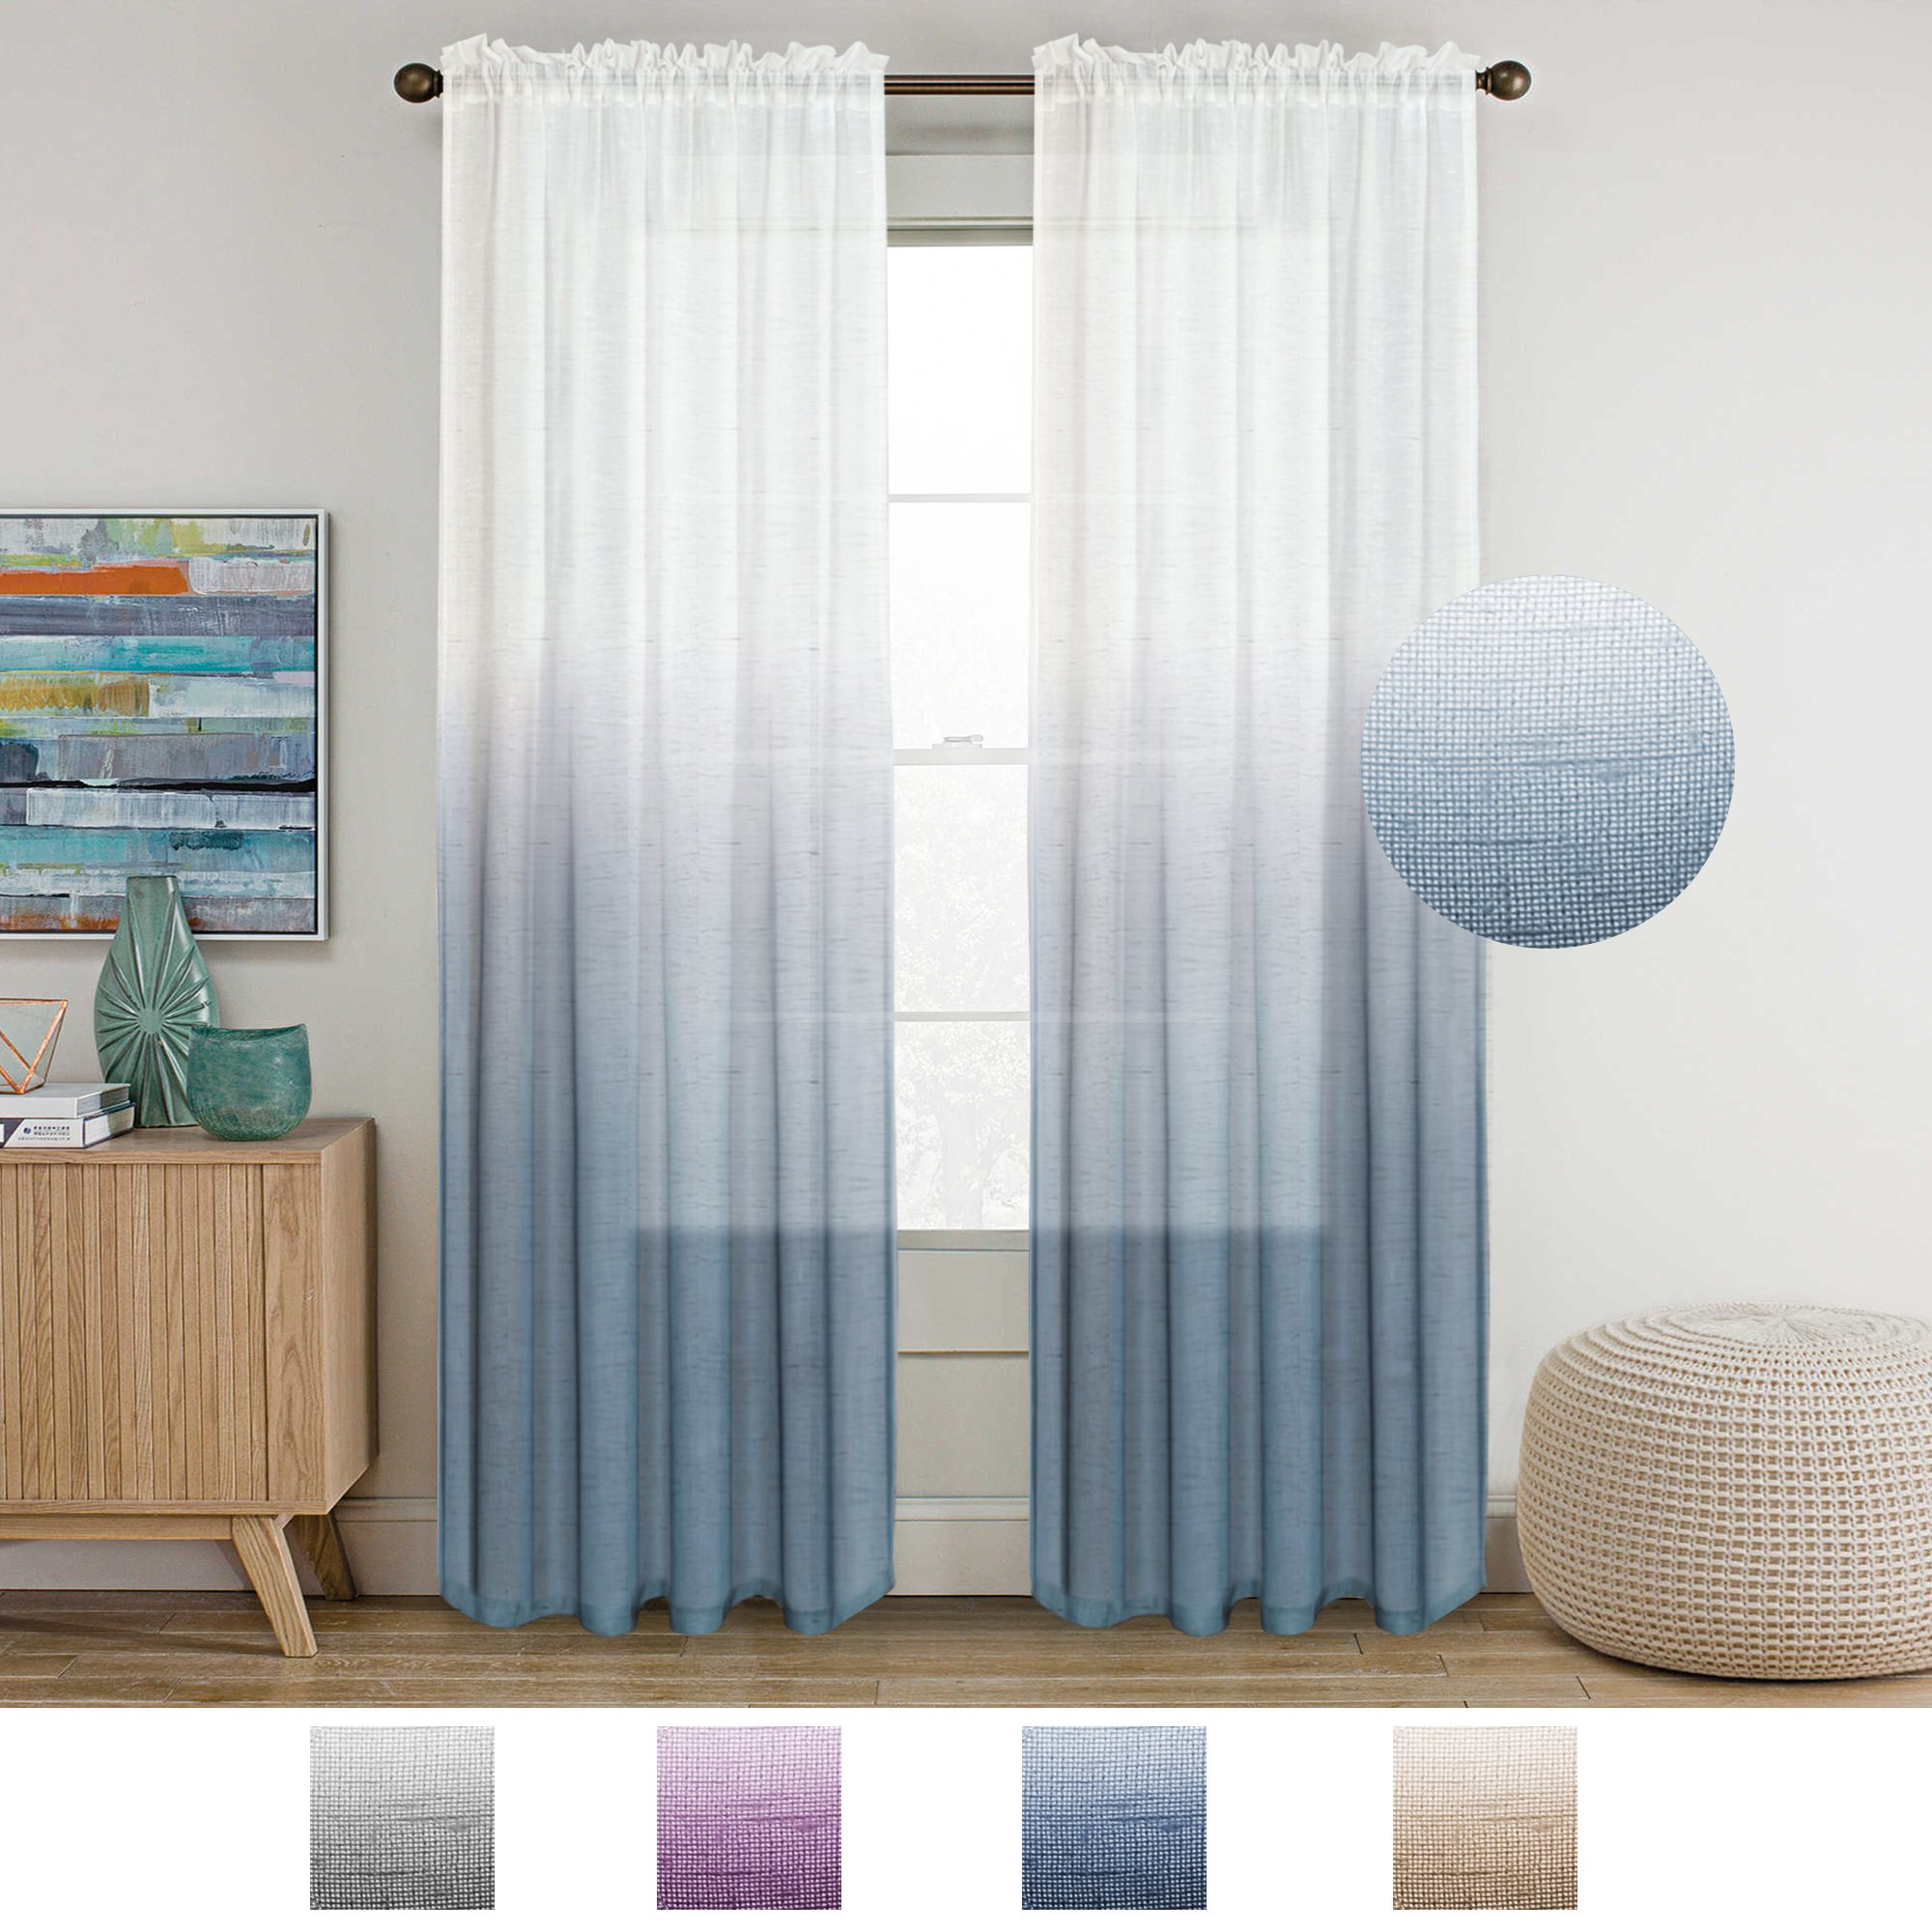 Cheap Natural Linen Sheer Curtains, Find Natural Linen Sheer Throughout Ombre Embroidery Curtain Panels (View 17 of 20)